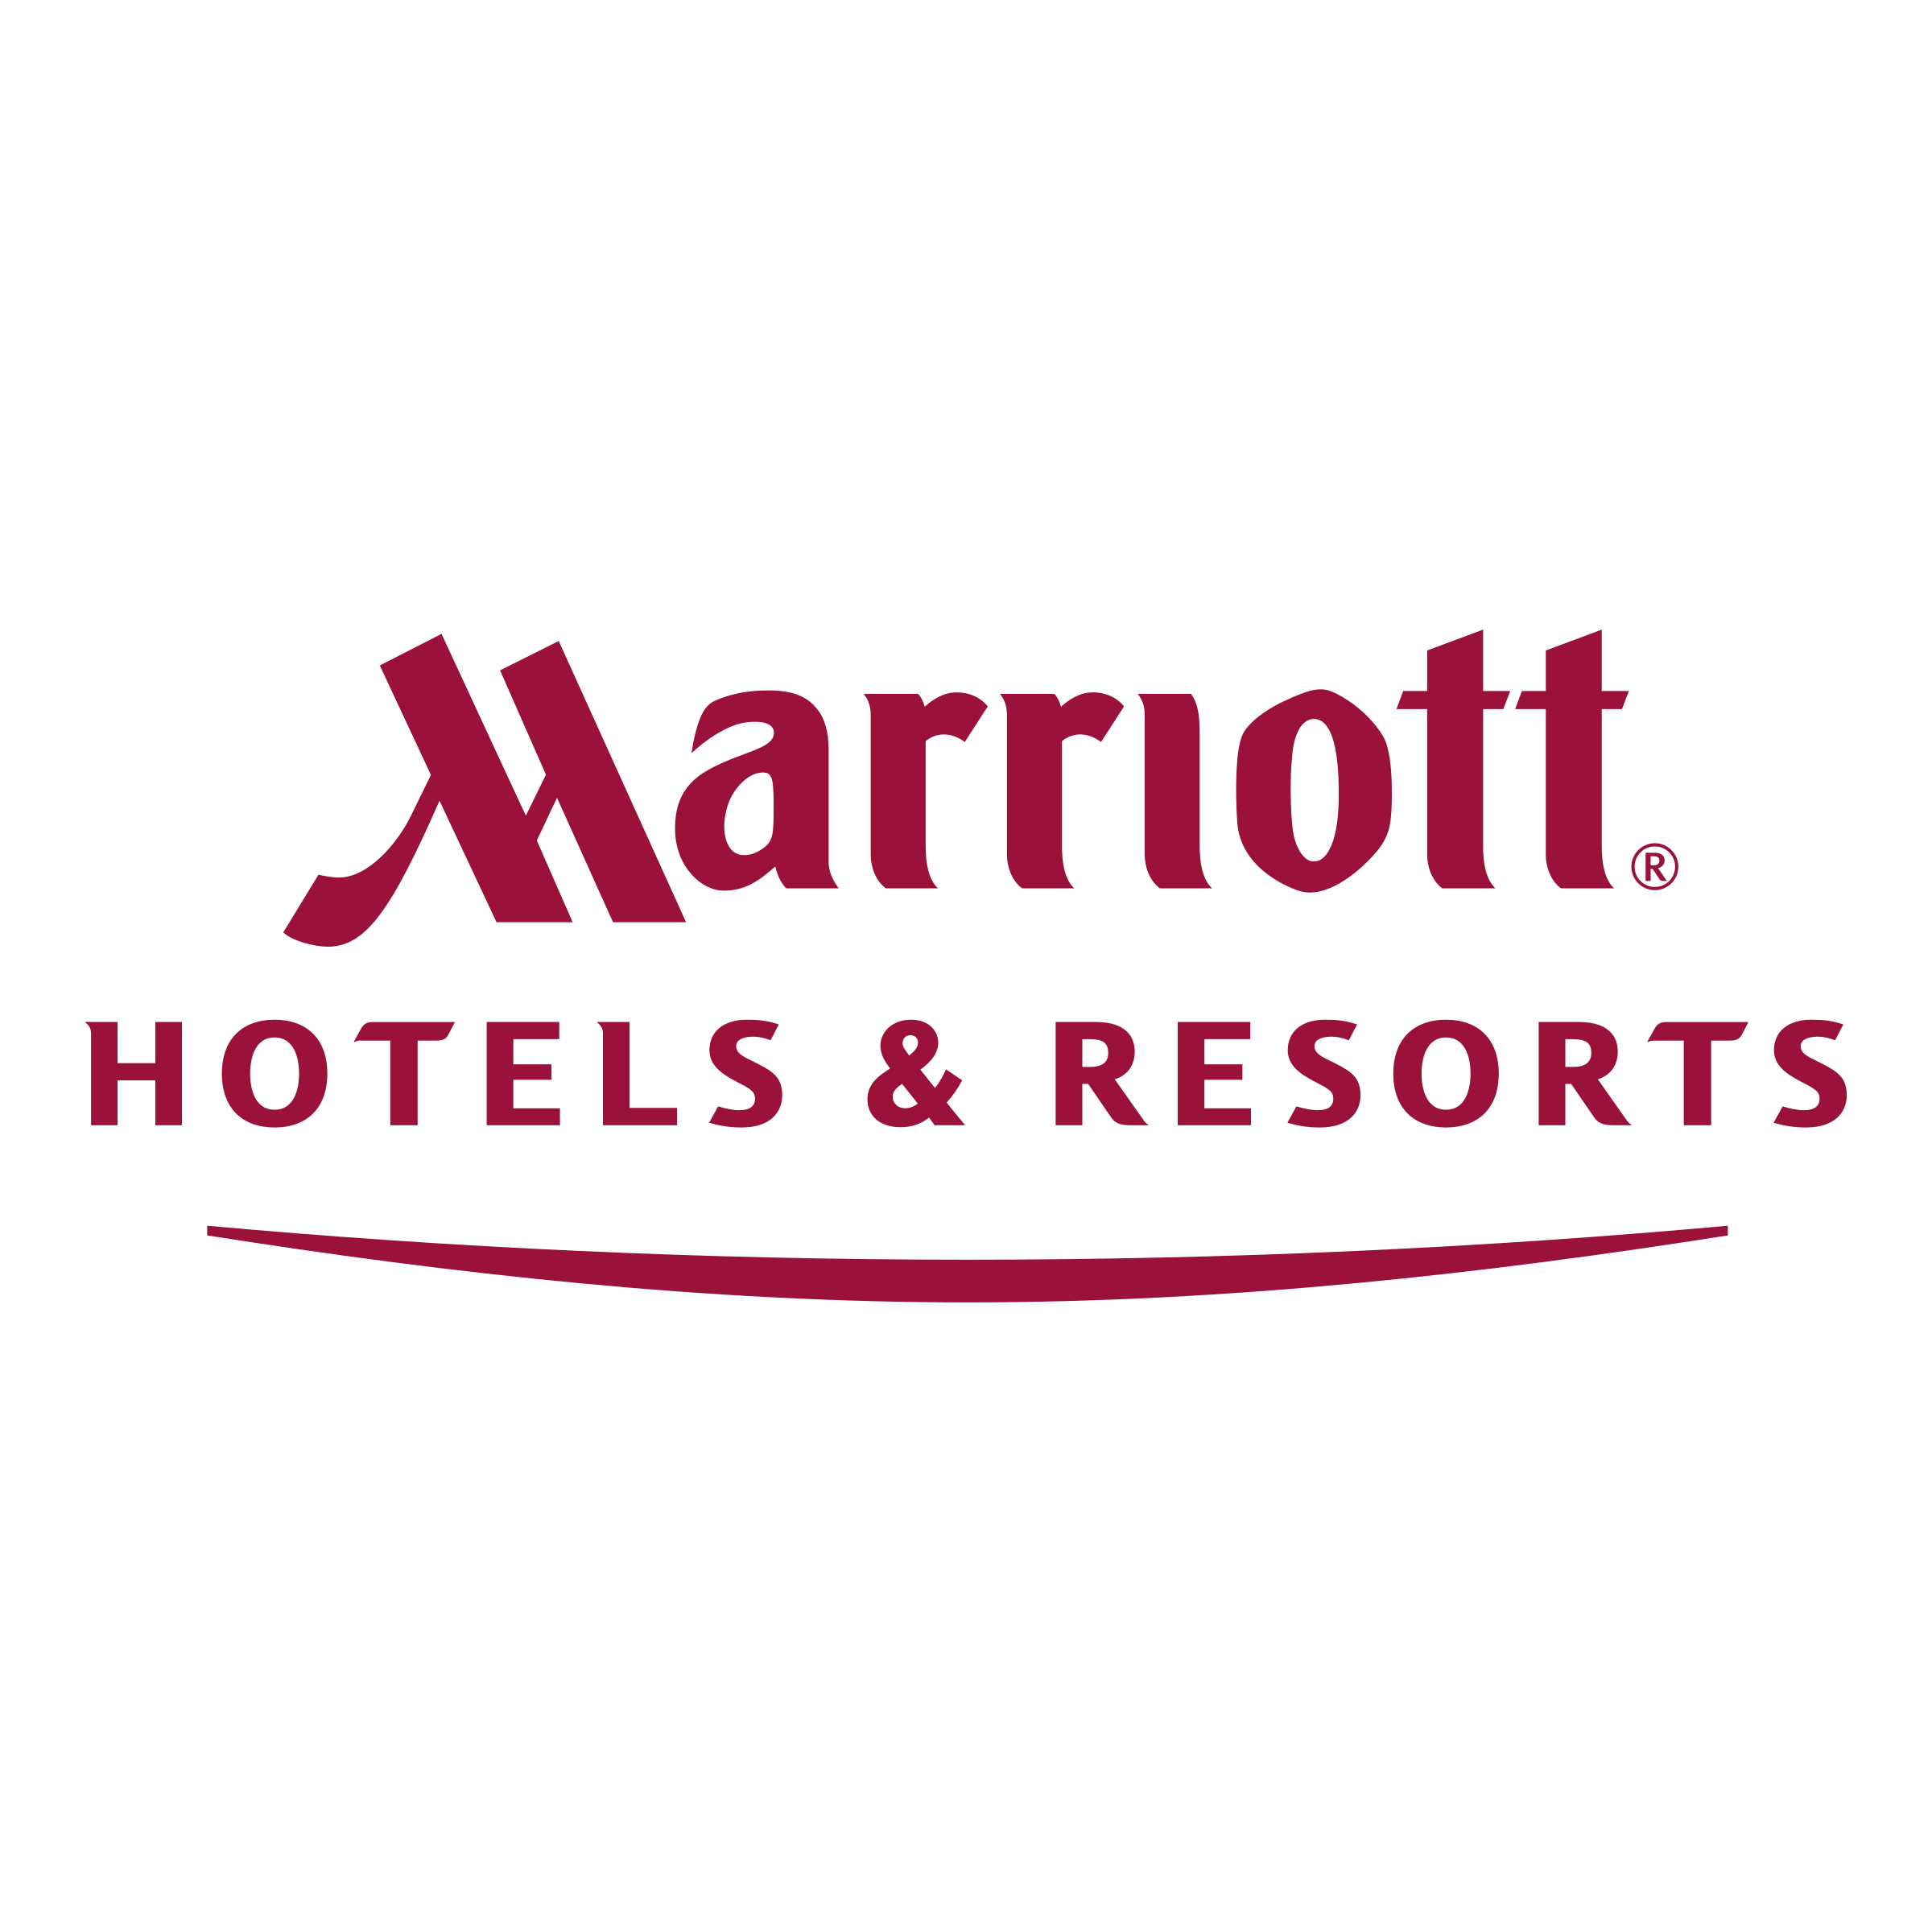 The Marriott Hotels logo